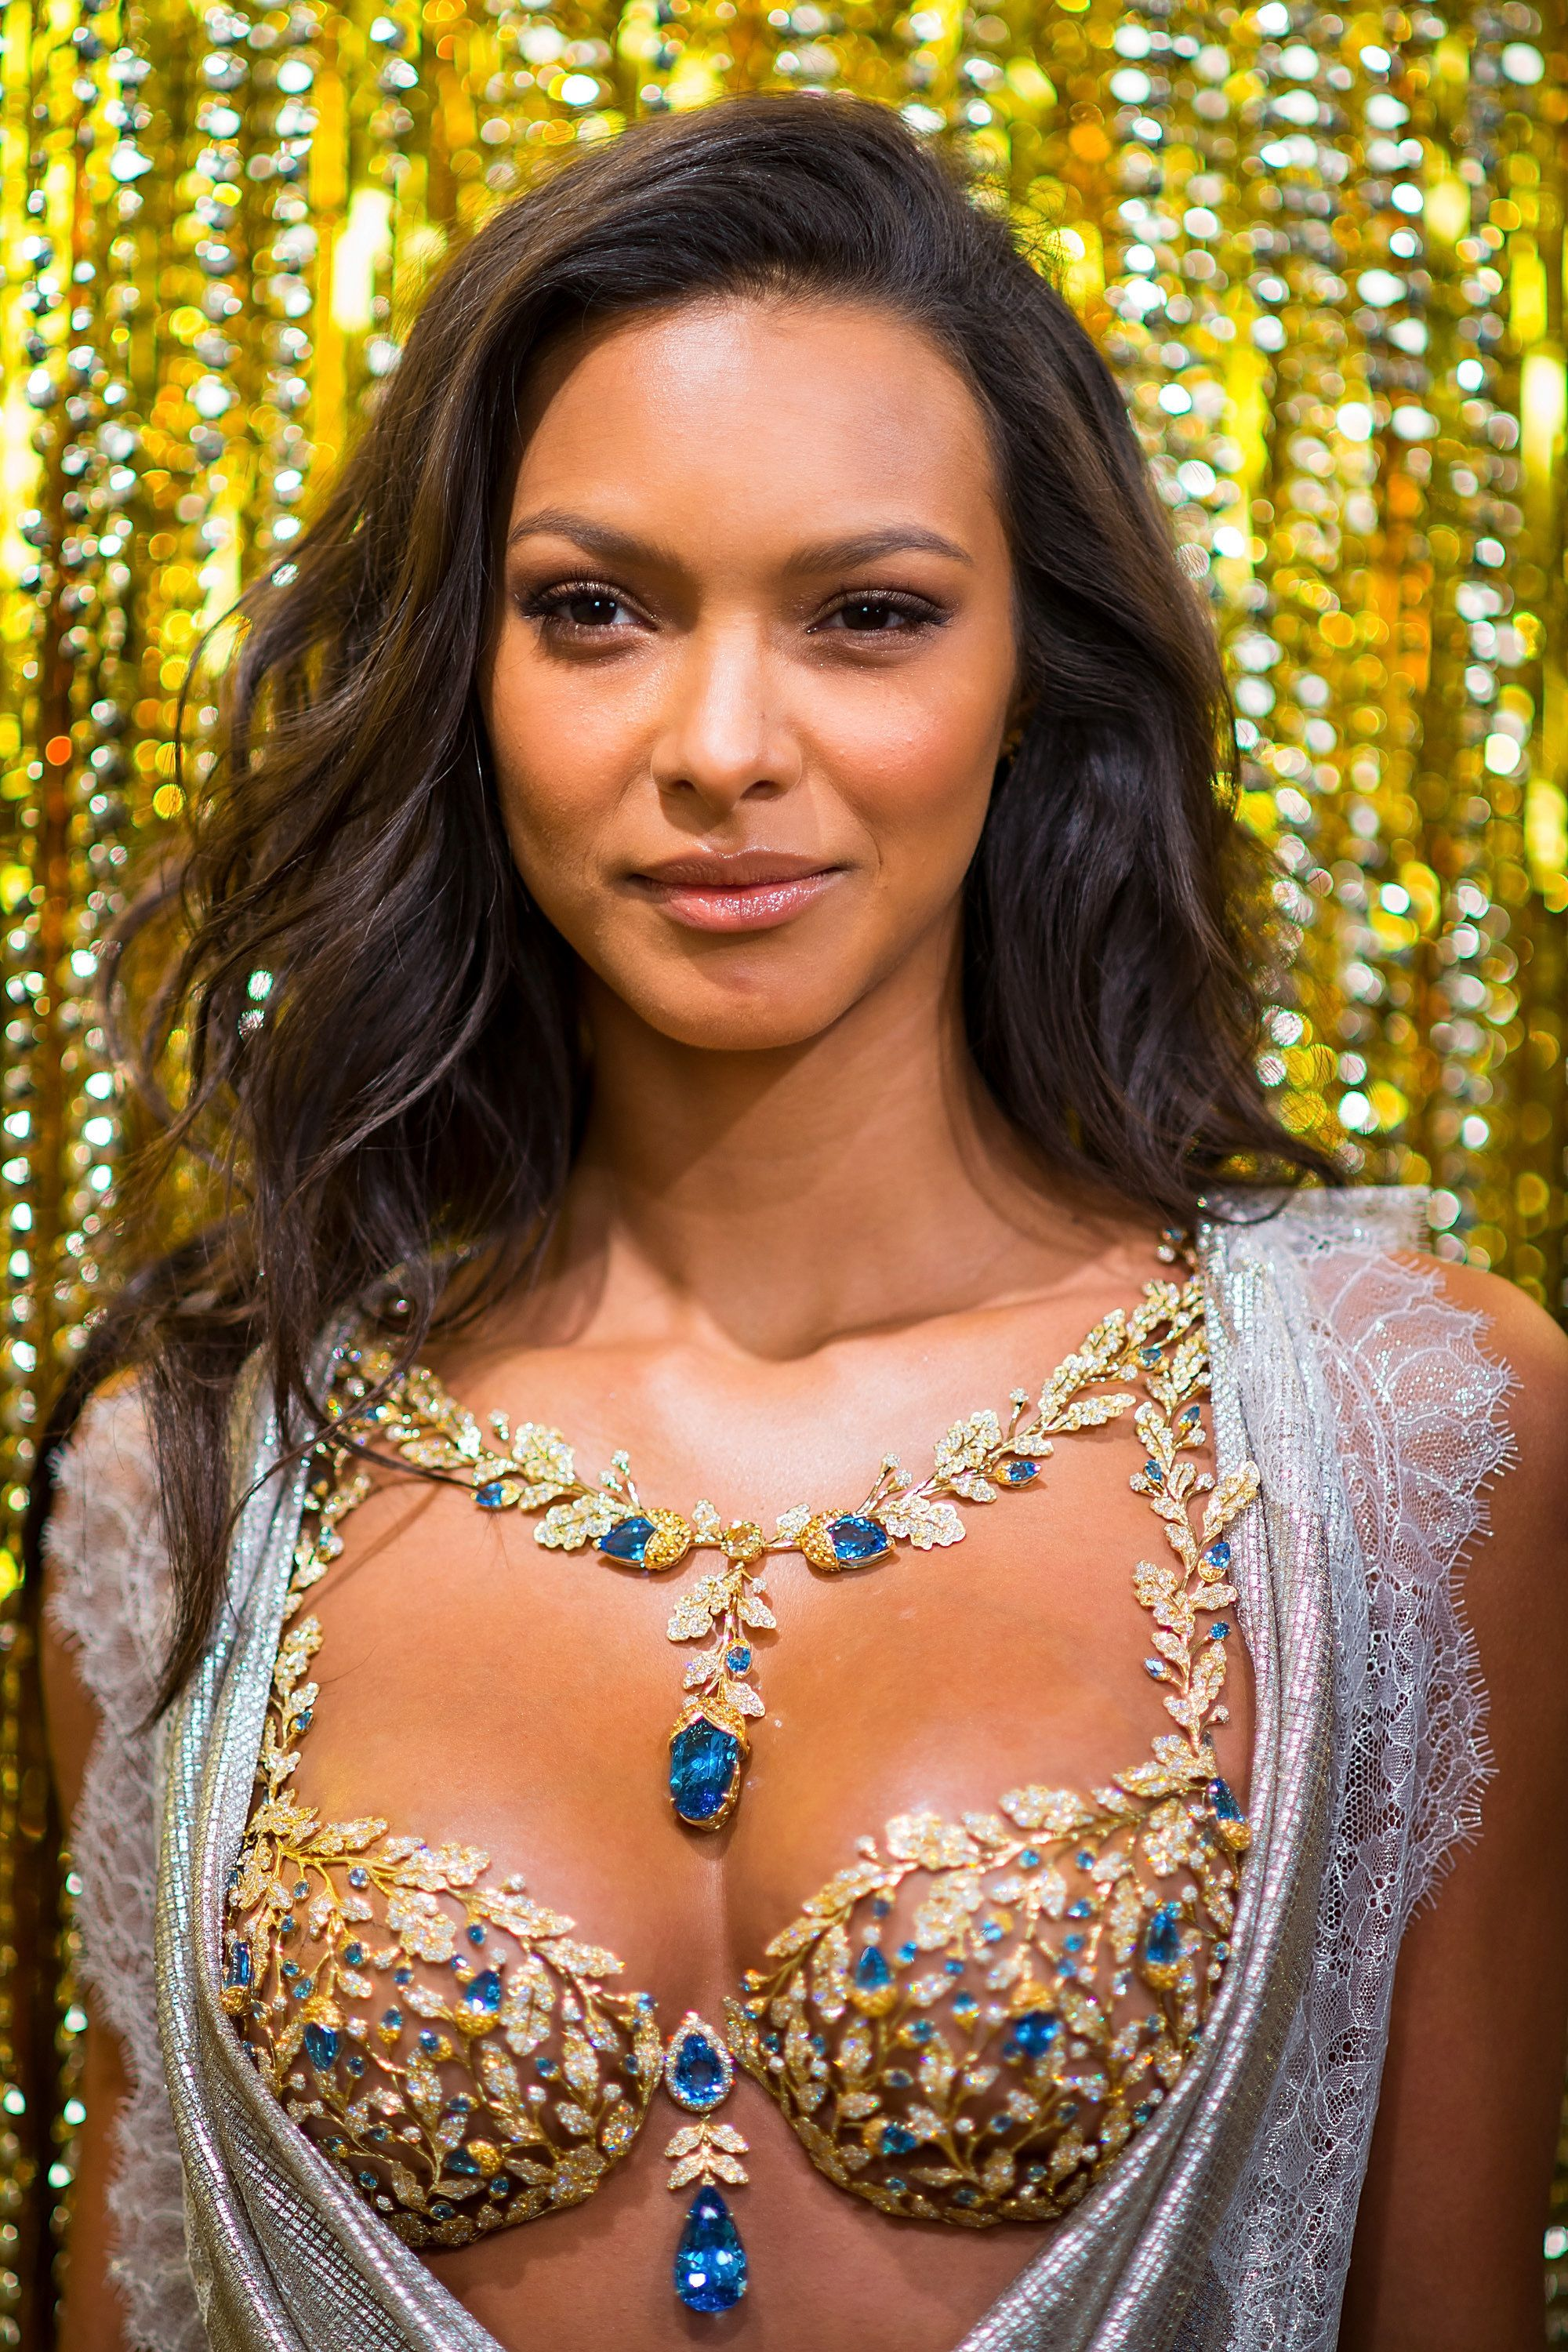 Victoria's Secret Angel Lais Ribeiro reveals the 2017 Champagne Nights Fantasy Bra on Nov. 1, 2017 in New York City.&nbs